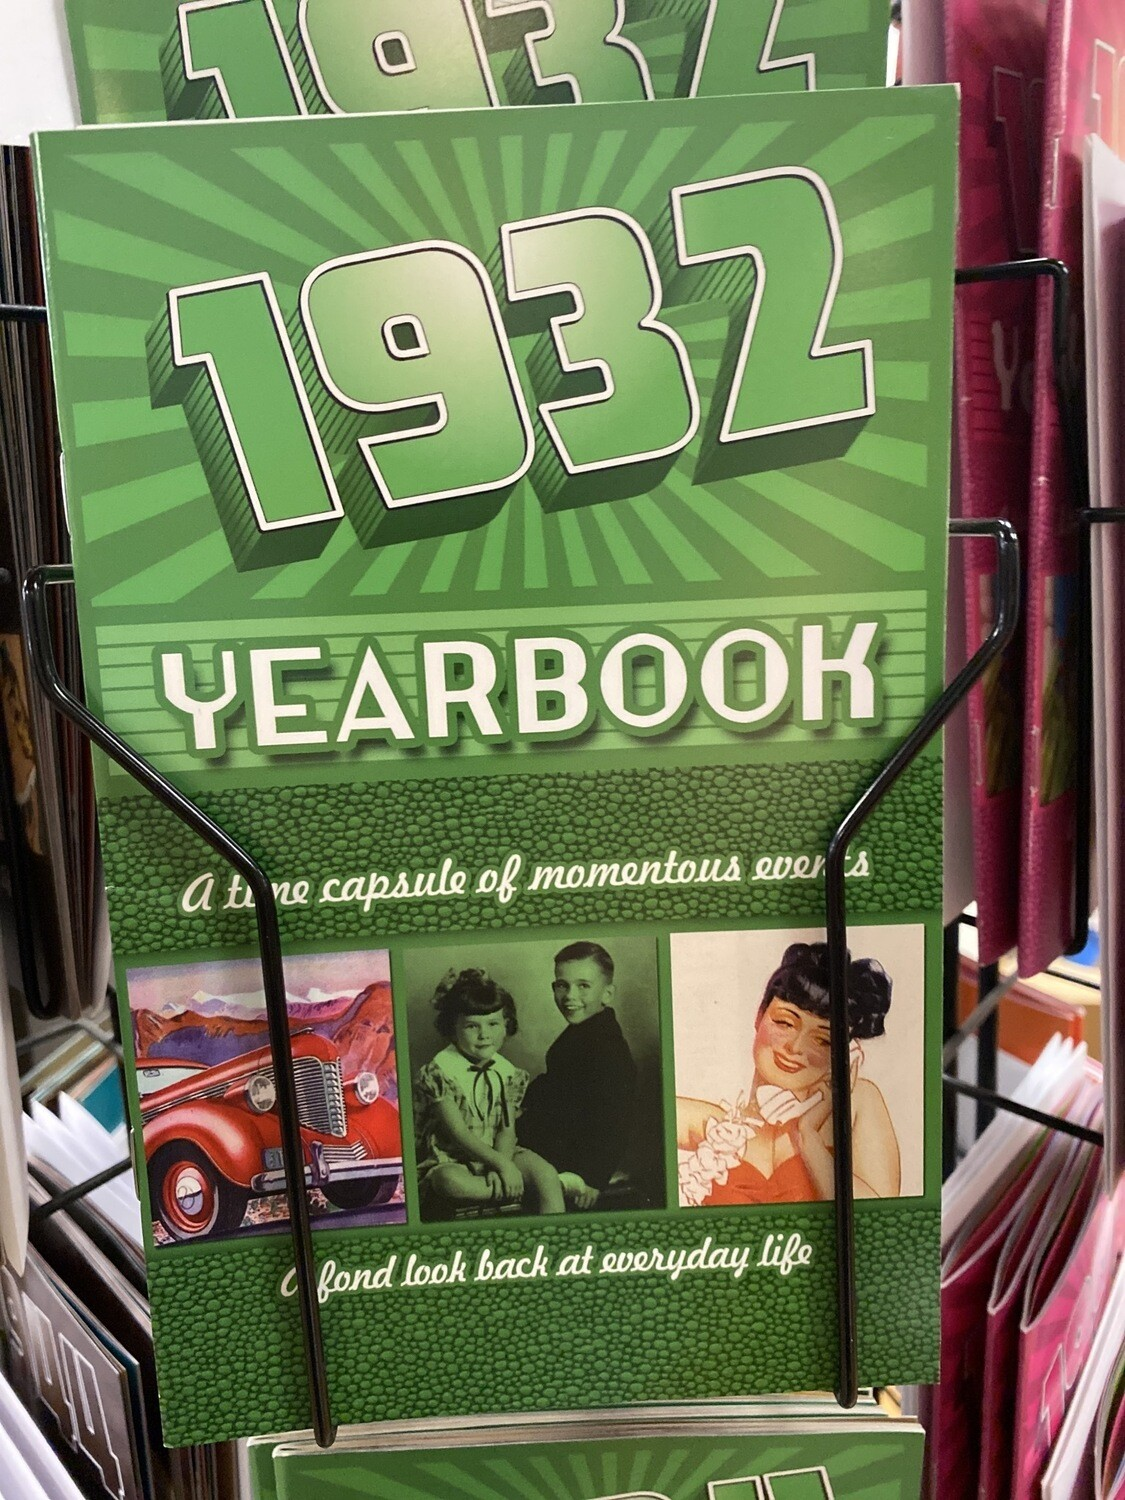 1932 Yearbook Kardlet Nostalgic News, Curious Trivia, Authentic Images 24 Pages.